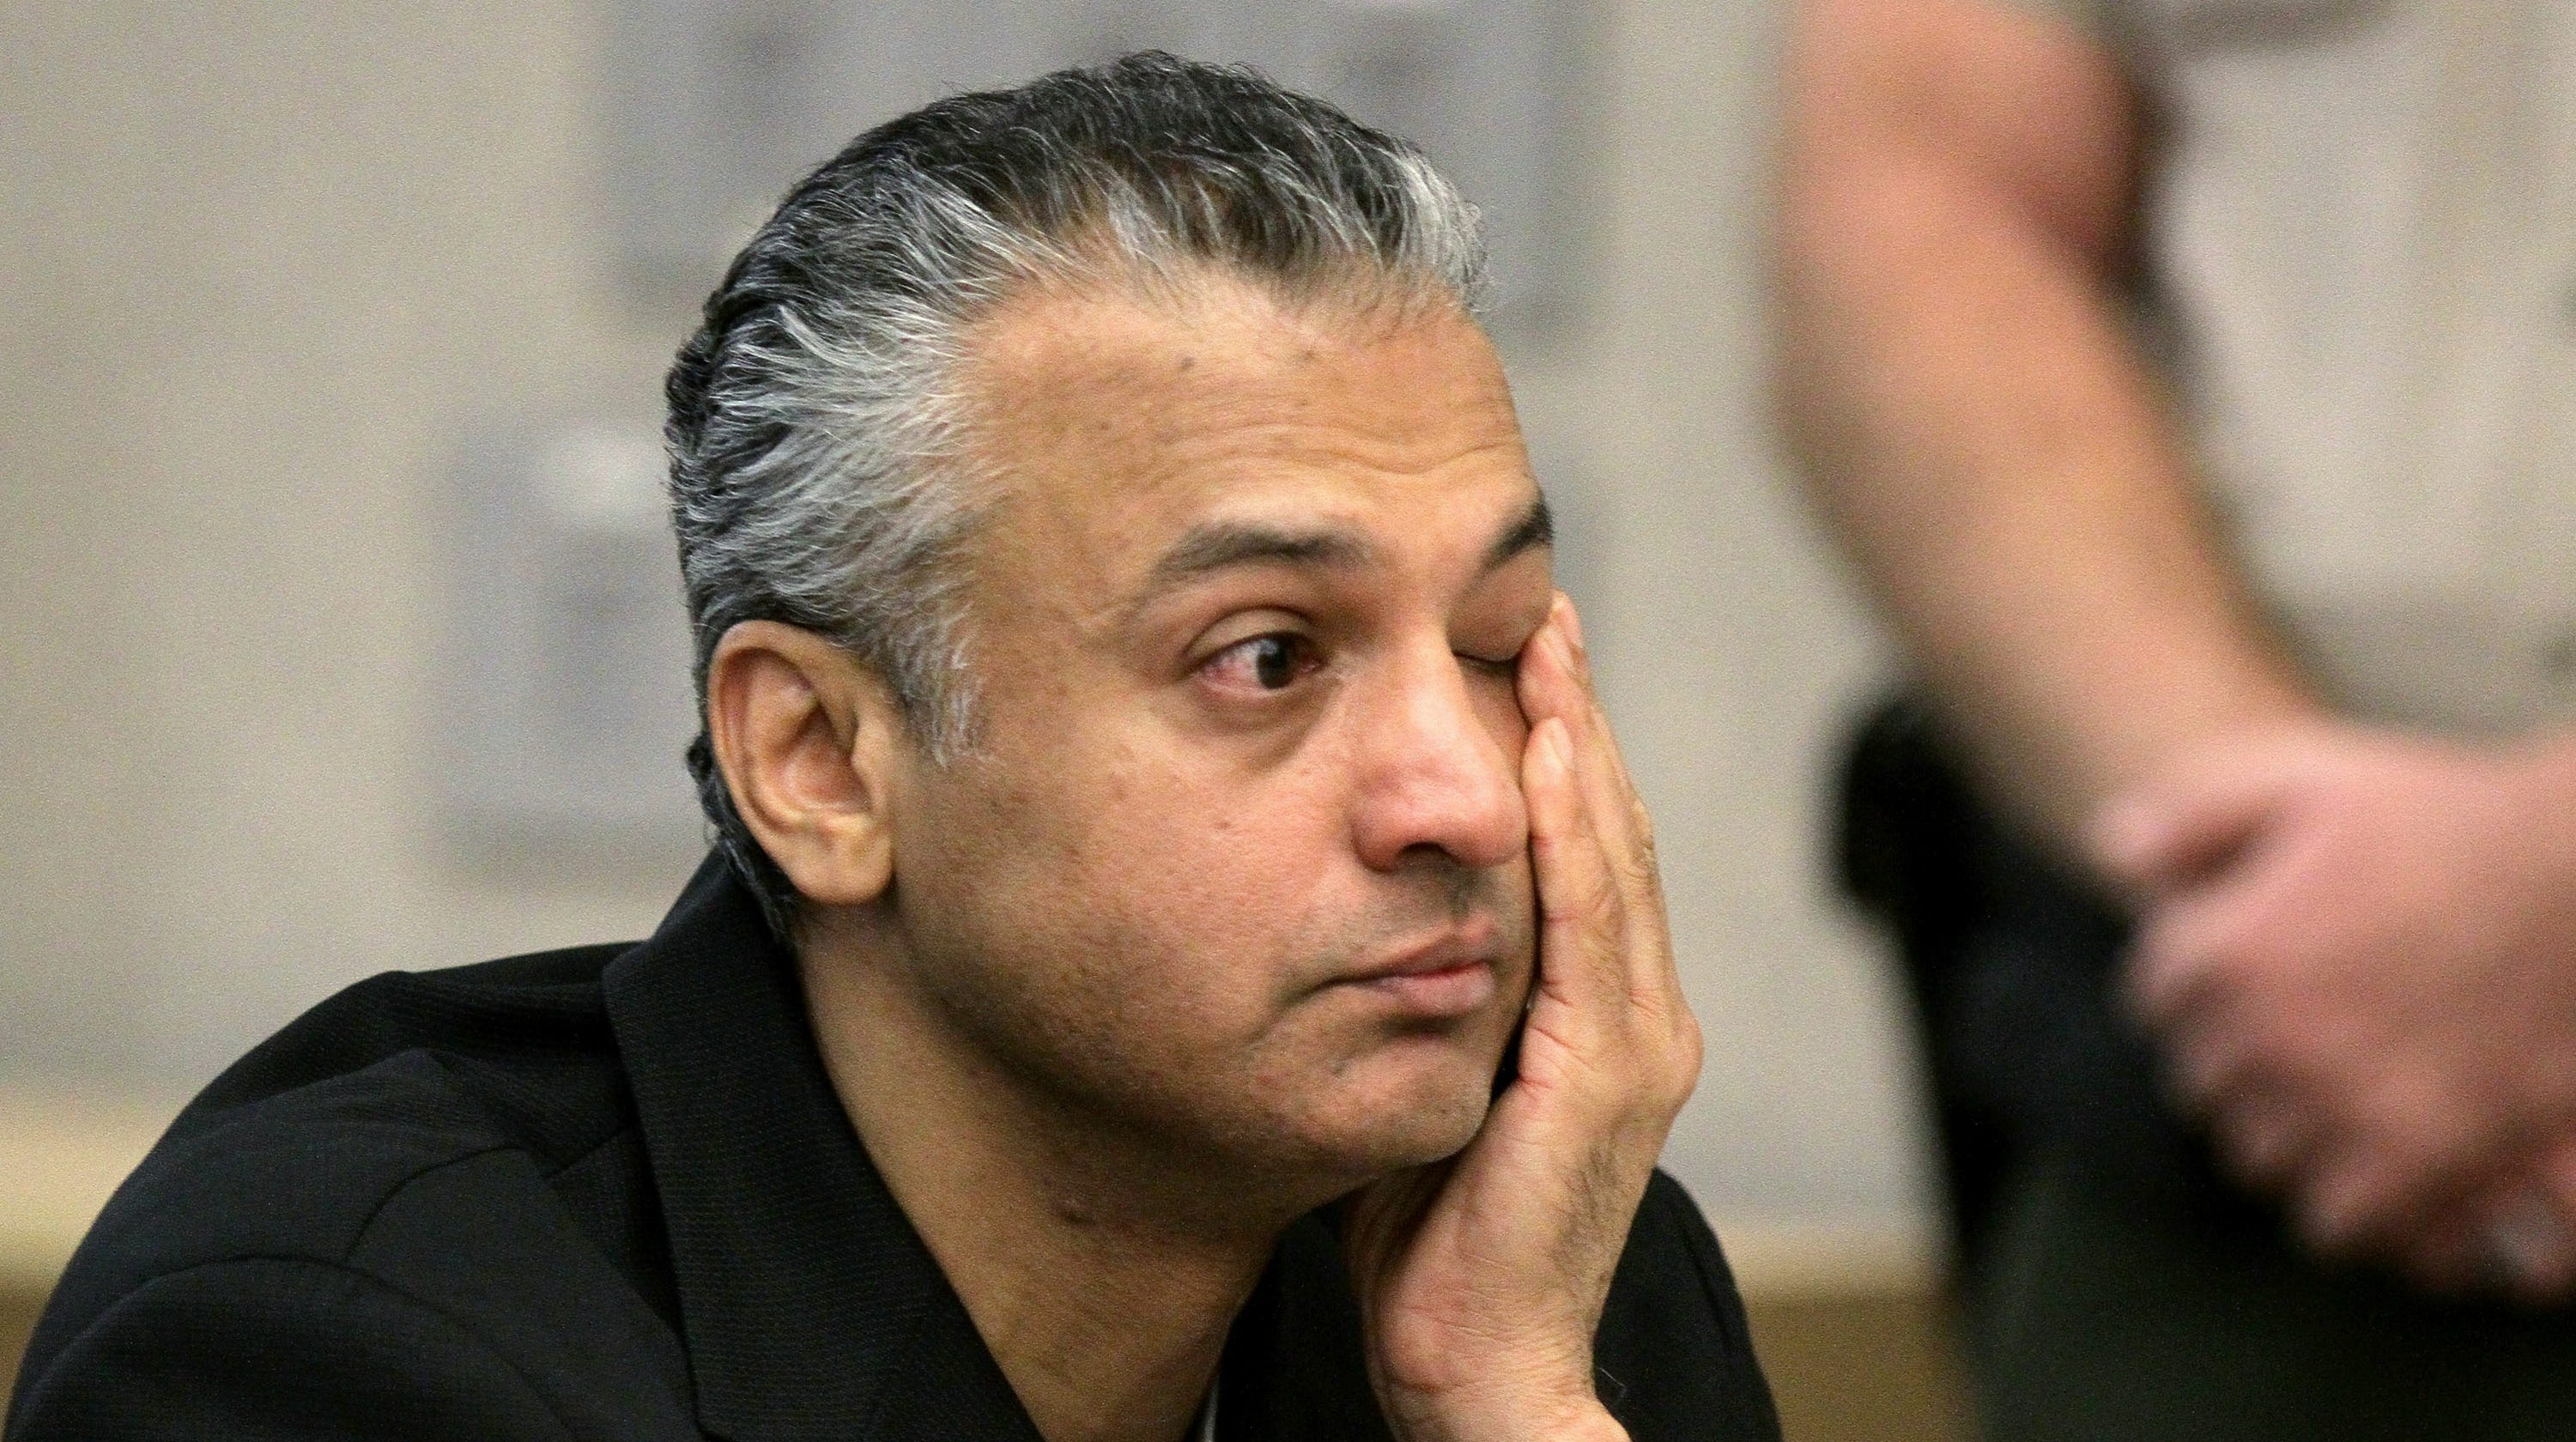 40-Year-Old Virgin' actor Shelley Malil granted prison release